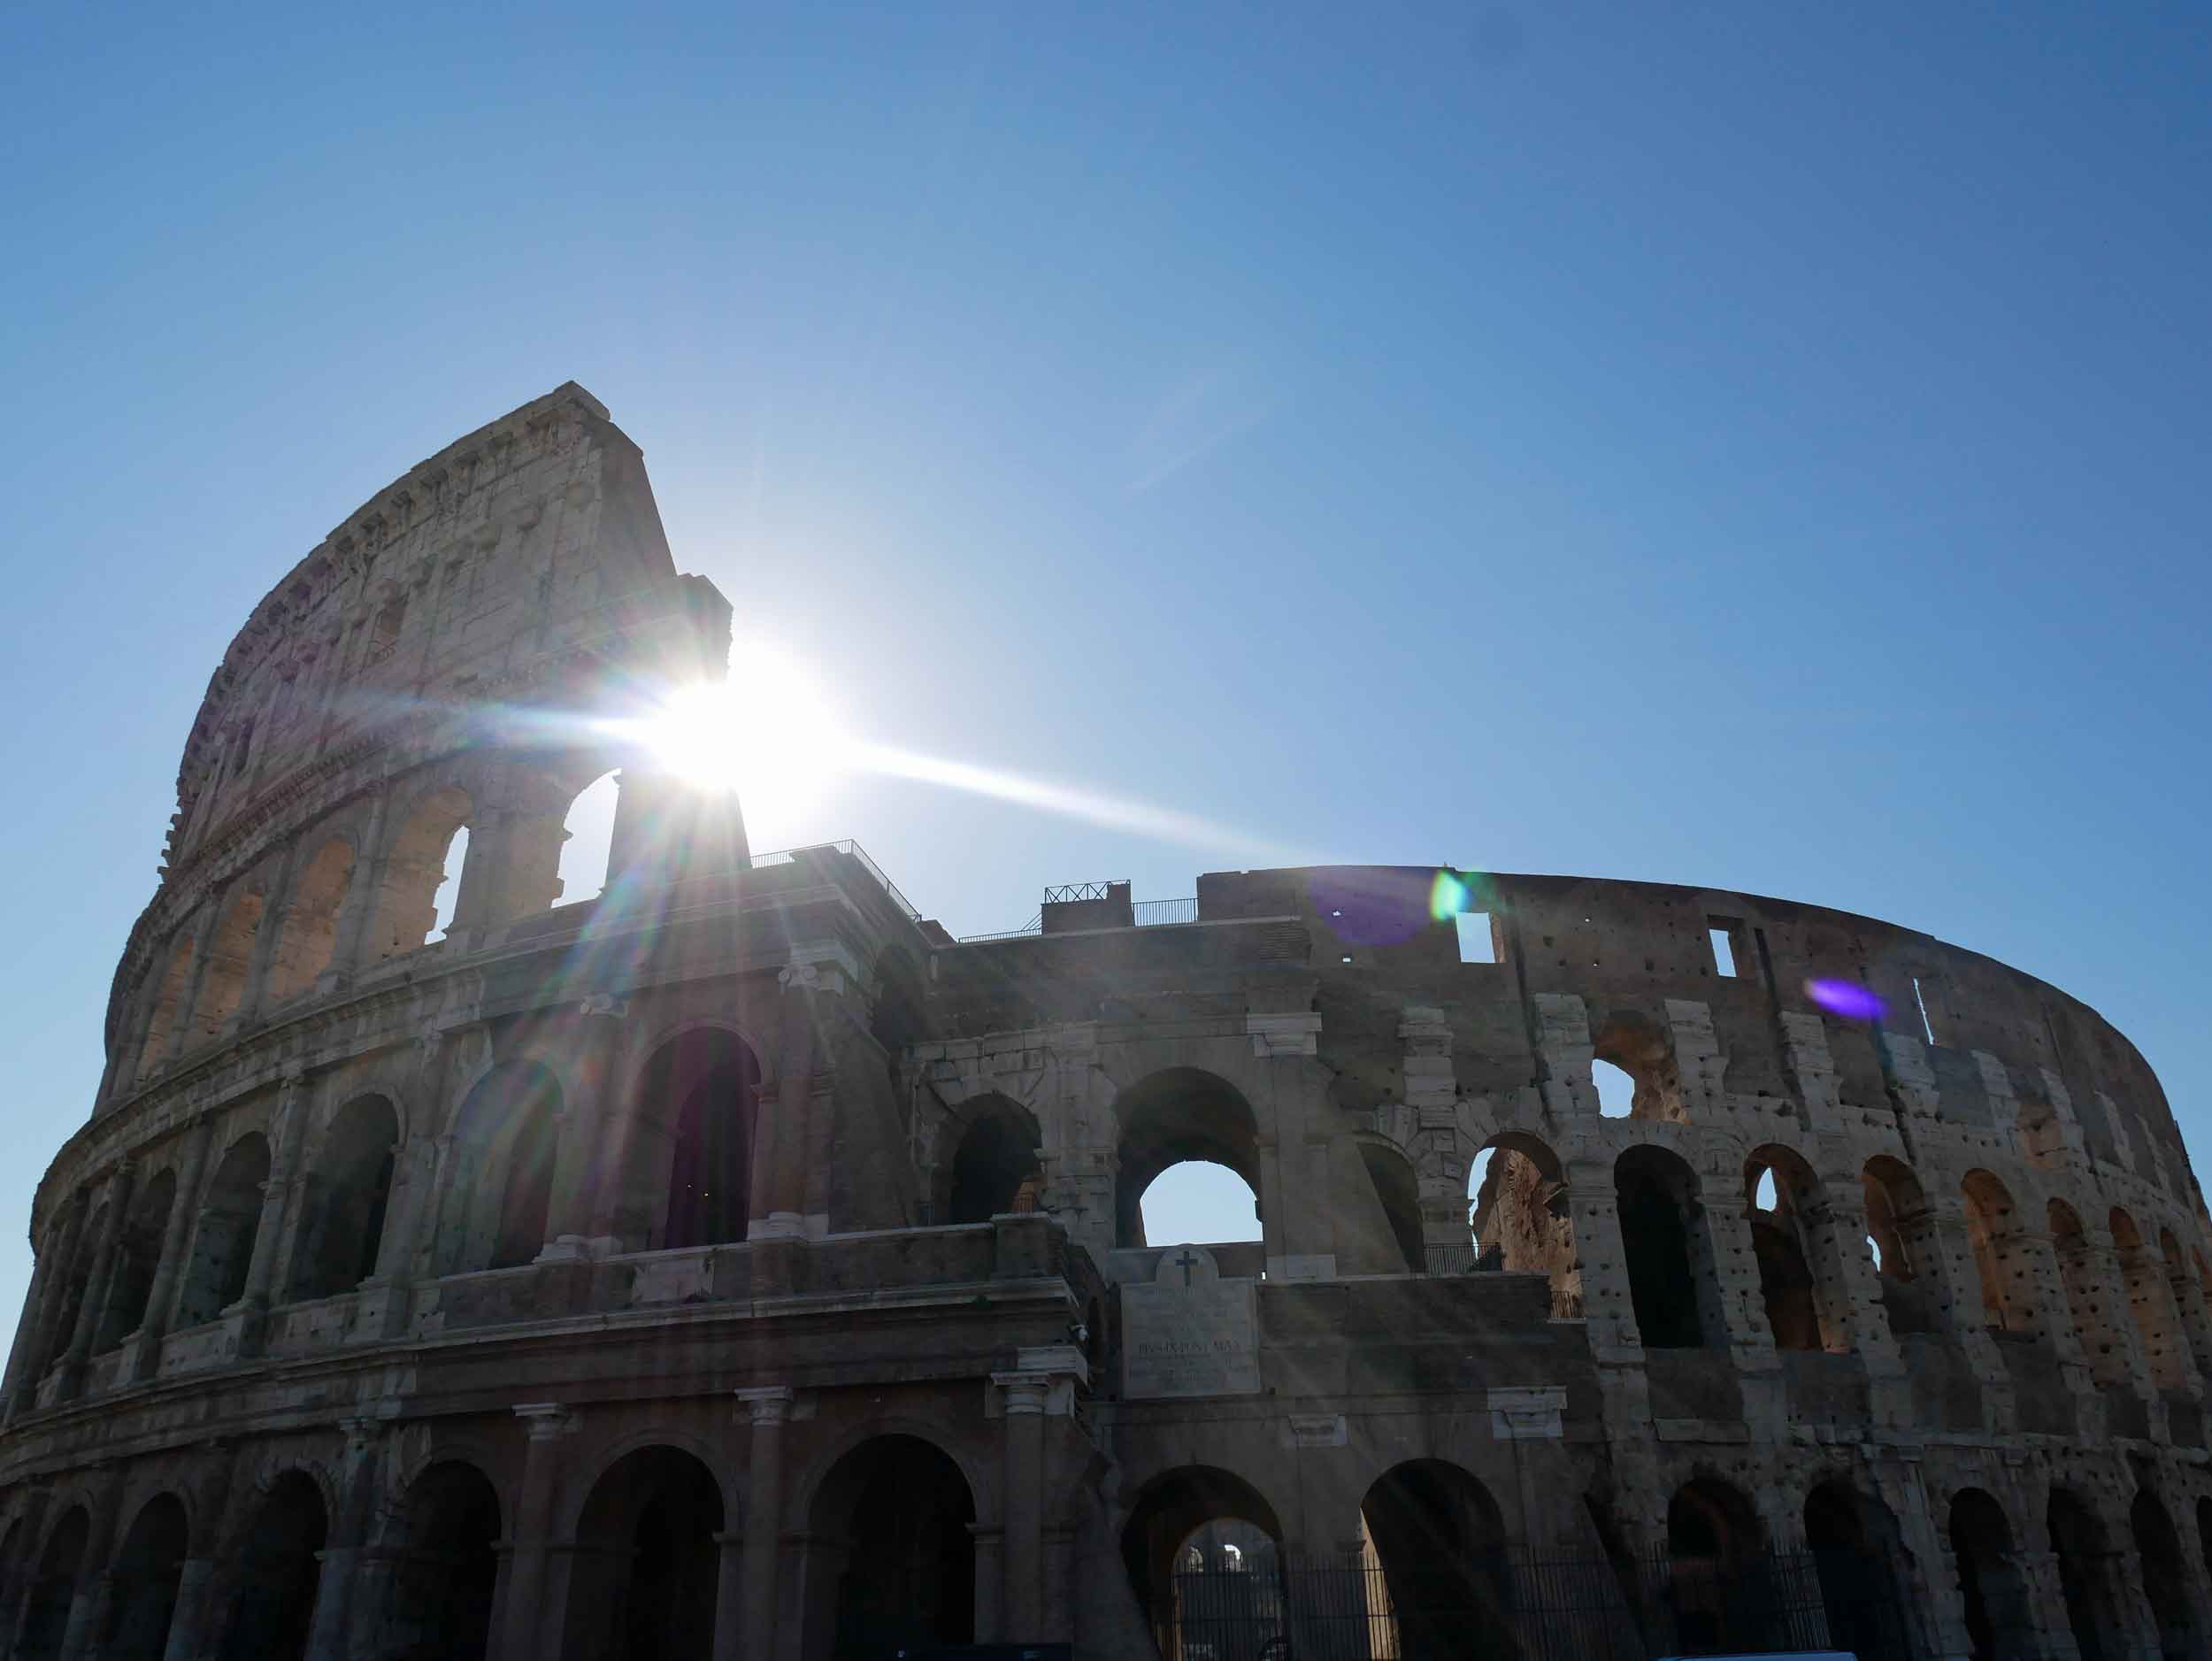 Up early to beat the crowds (and heat), the rising sun was a beautiful backdrop to Rome's ancient Colosseum (July 13).